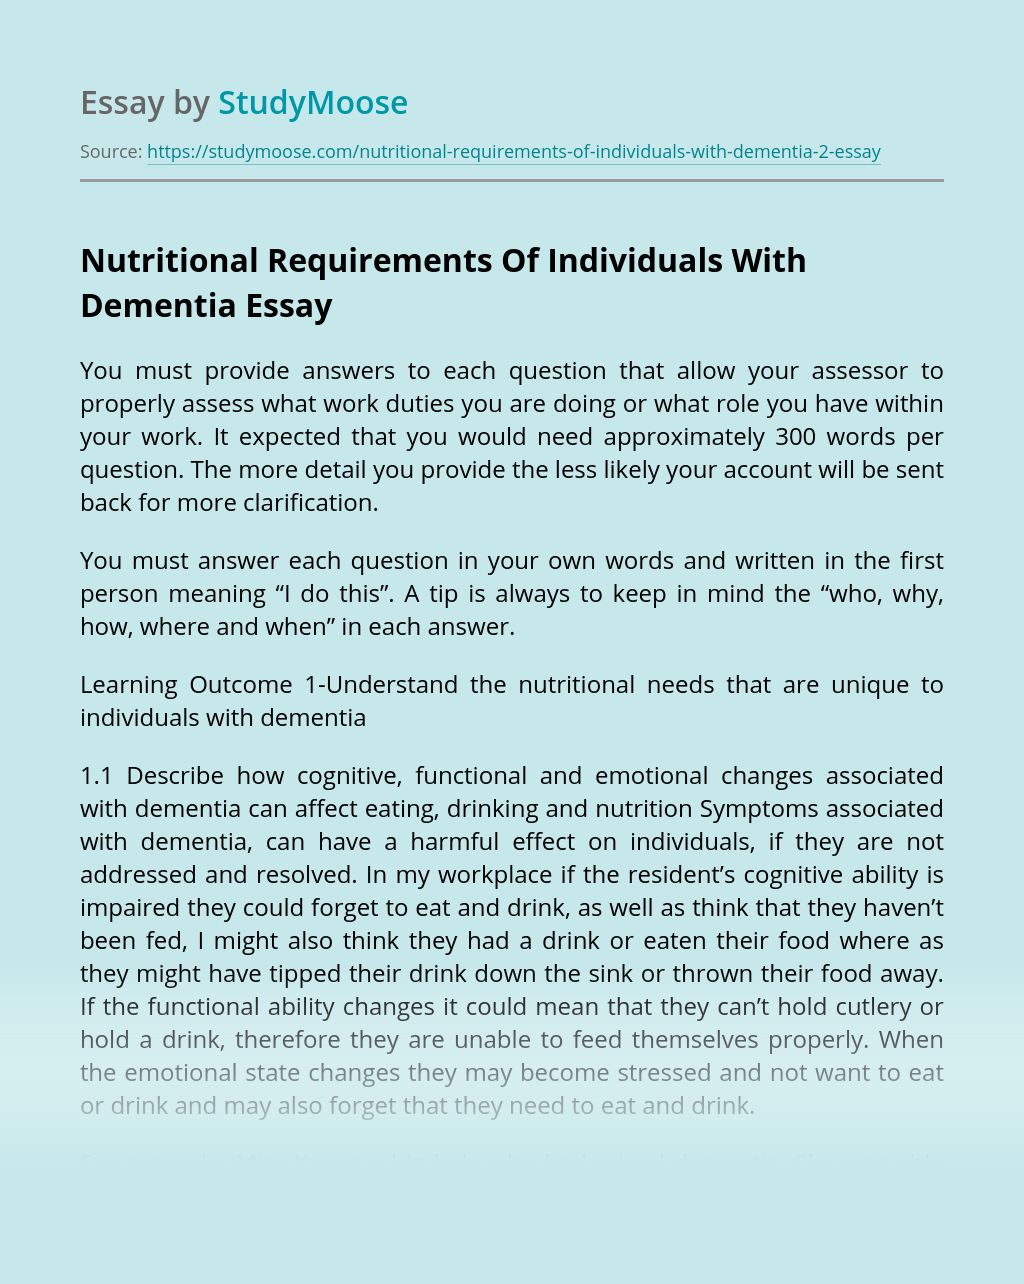 Nutritional Requirements Of Individuals With Dementia